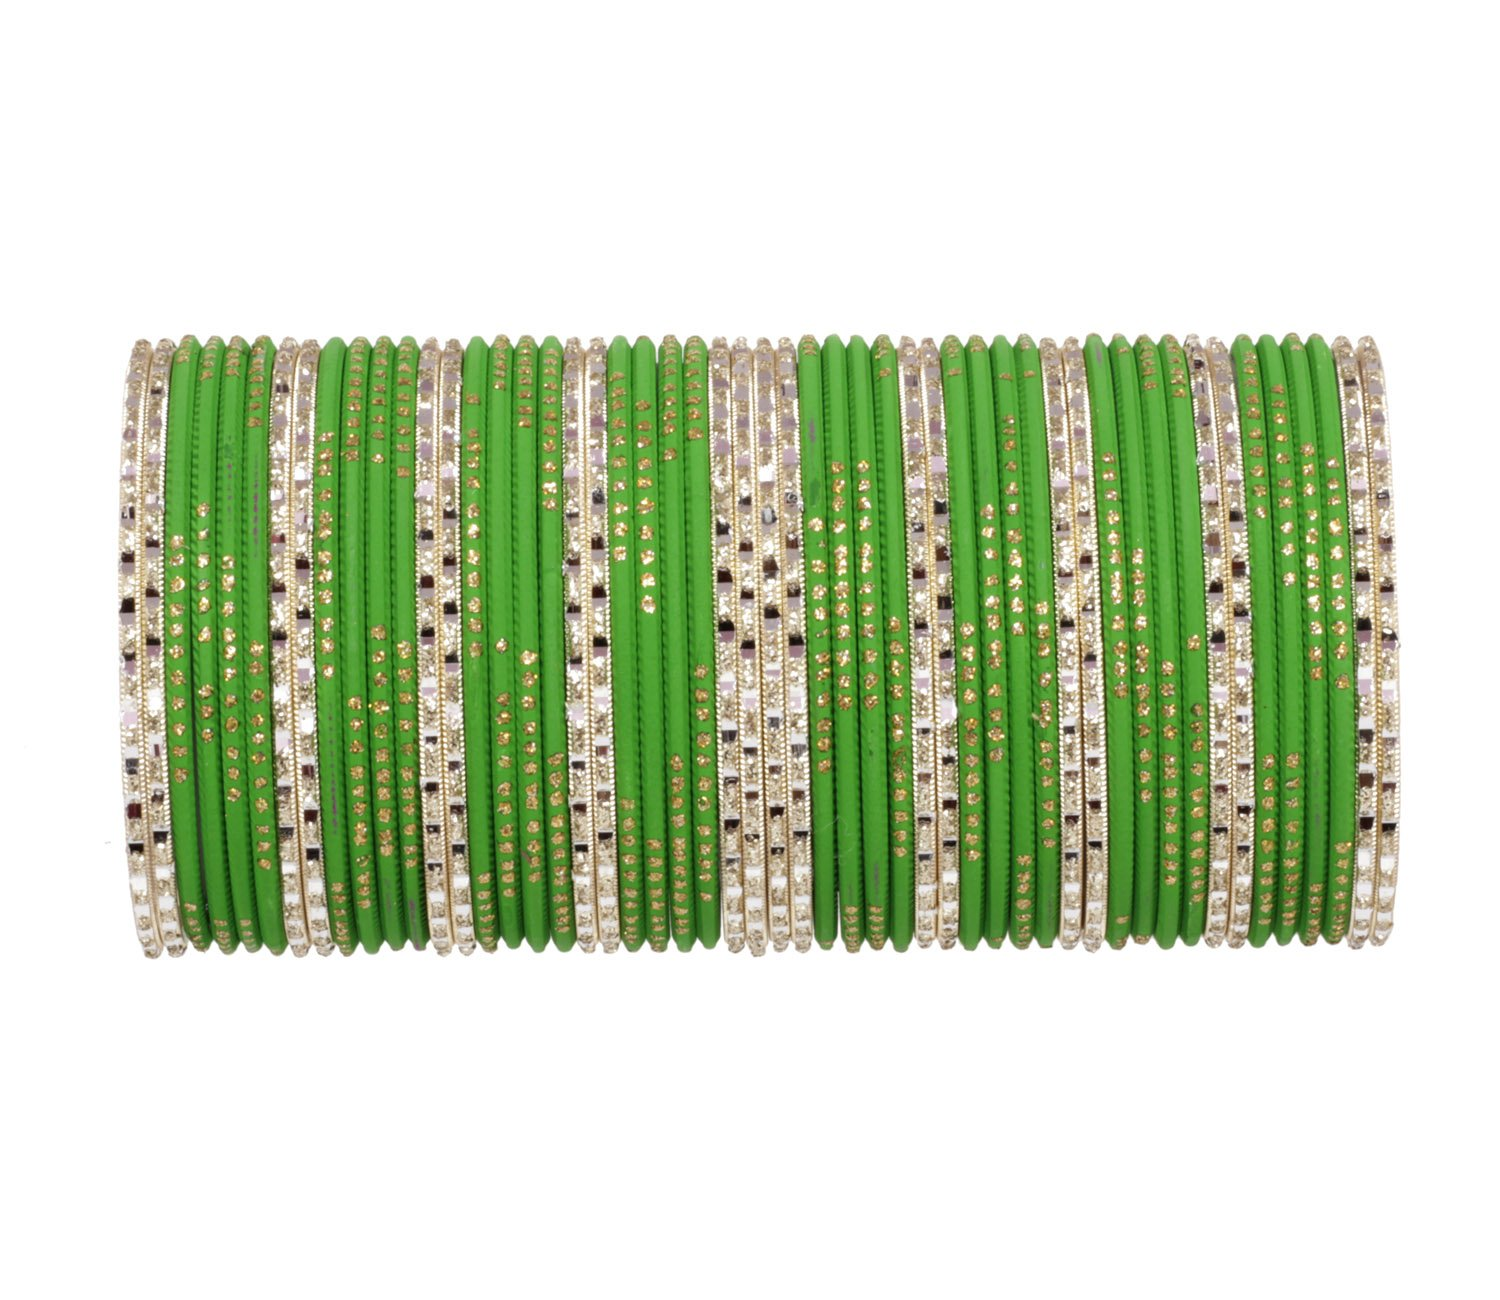 Ratna Attractive Green Punjabi Style Bangles Set of 52 Pieces Traditional Wedding Jewelry (2.8)